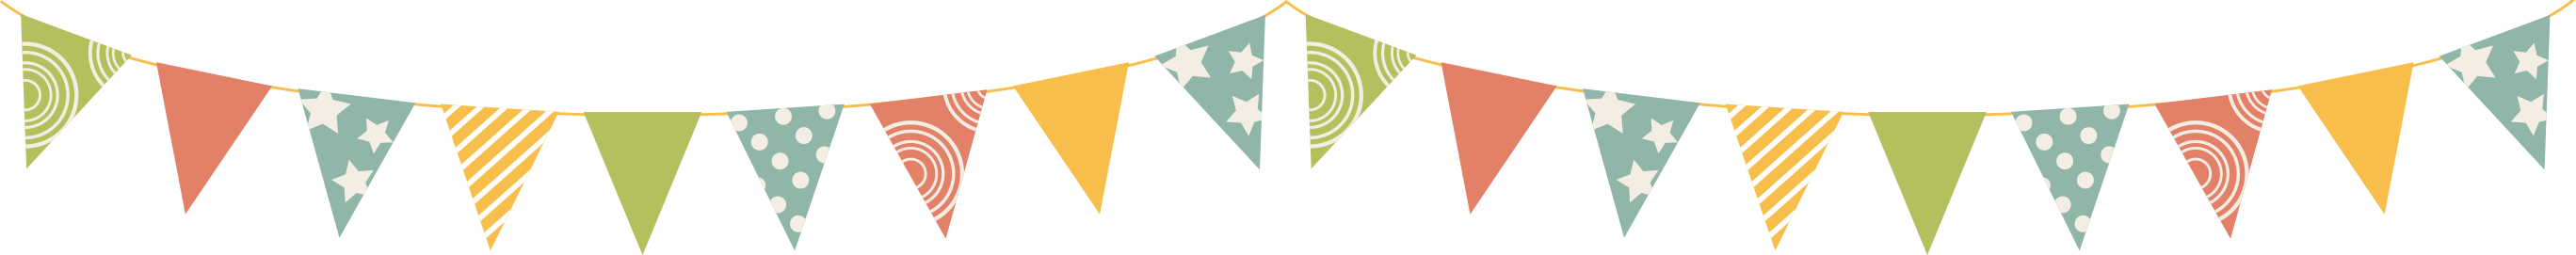 Party bunting png. Birthday parties kent county